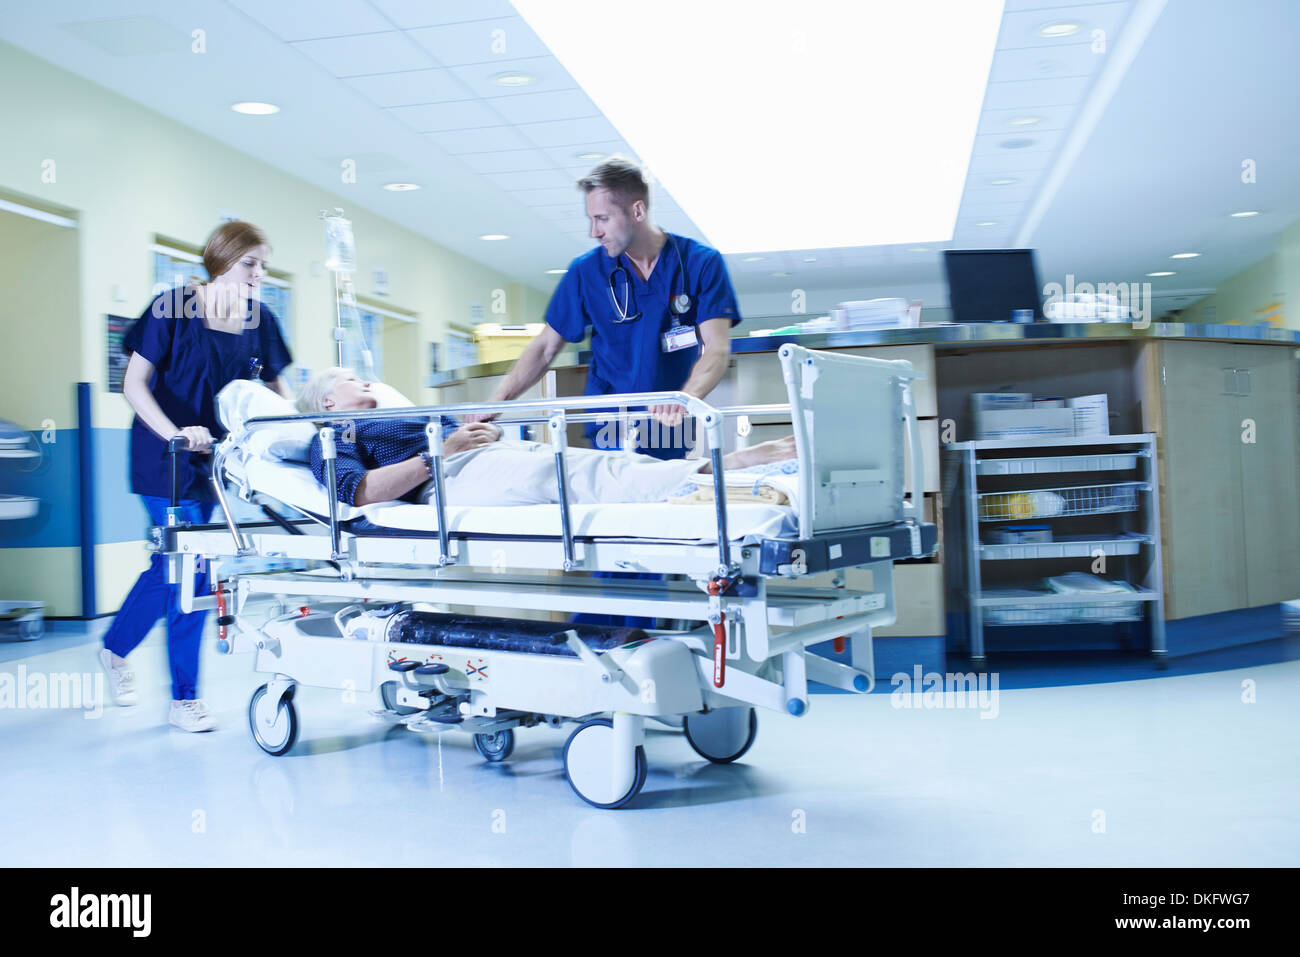 Two medics rushing with gurney in hospital emergency room - Stock Image